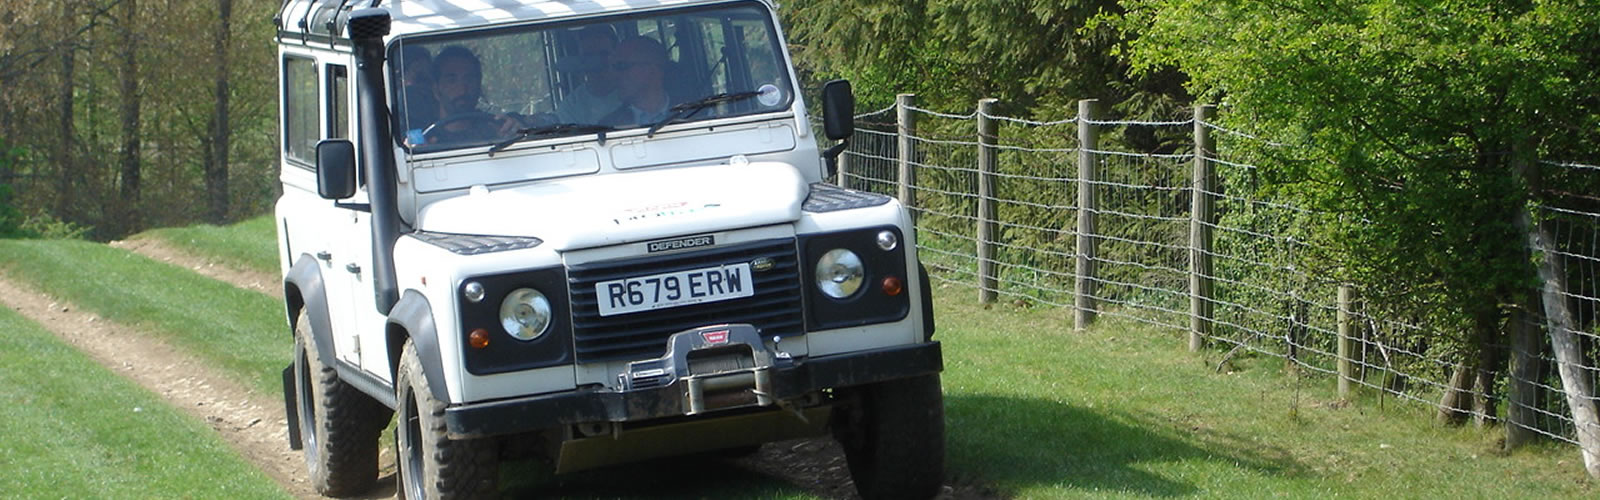 Land Rover Defender on Track